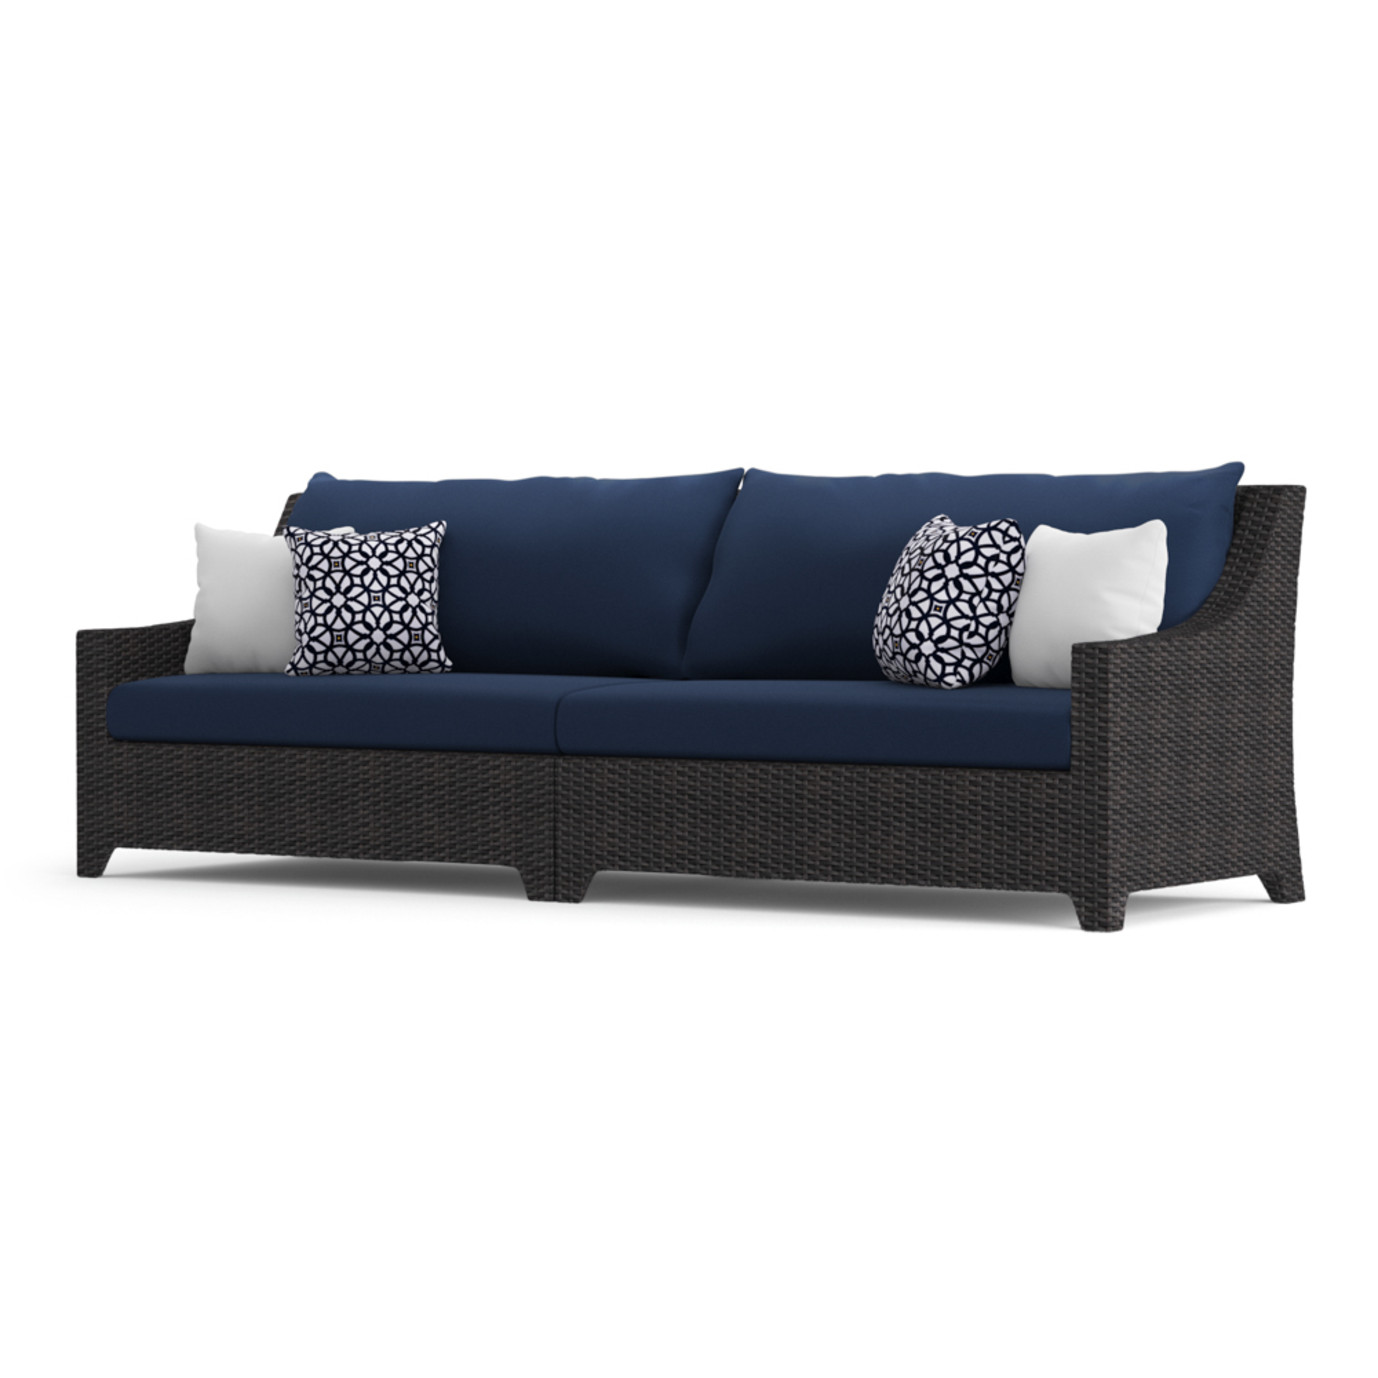 Deco™ Wood 8pc Sofa & Club Chair Set - Navy Blue